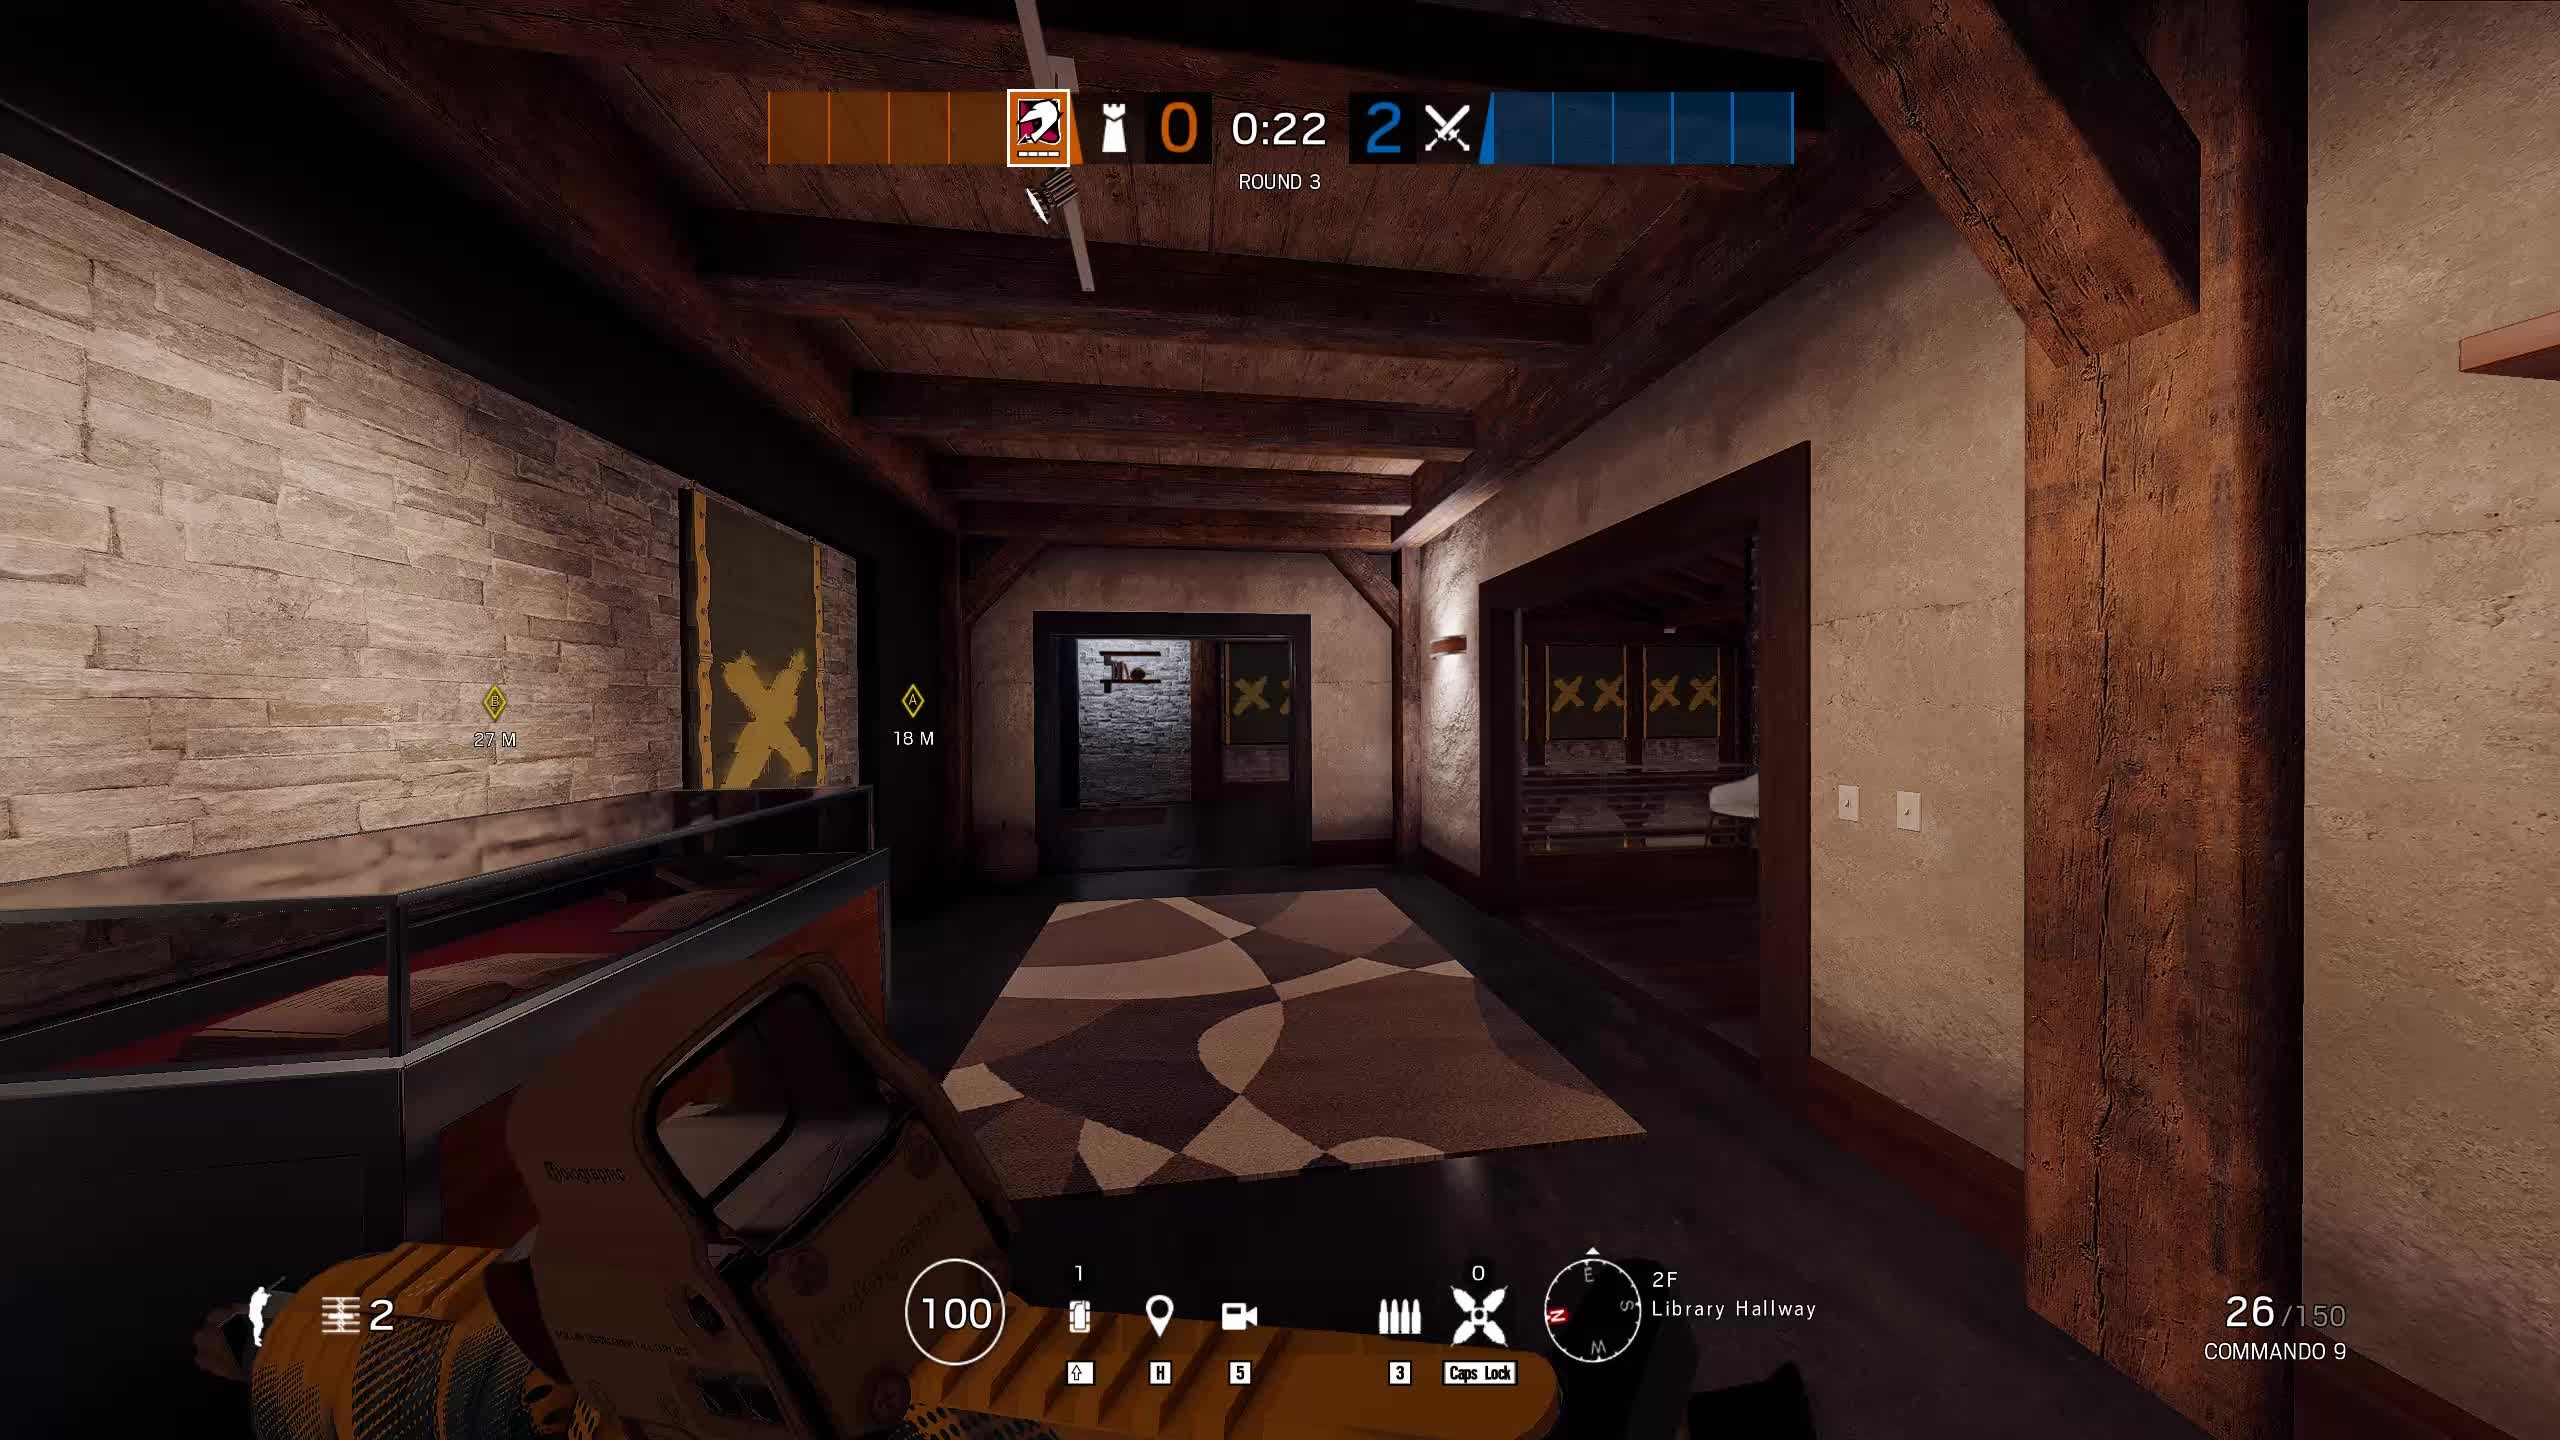 Rainbow Six: Guides - Guide to Playing Mozzie on Chalet video cover image 15